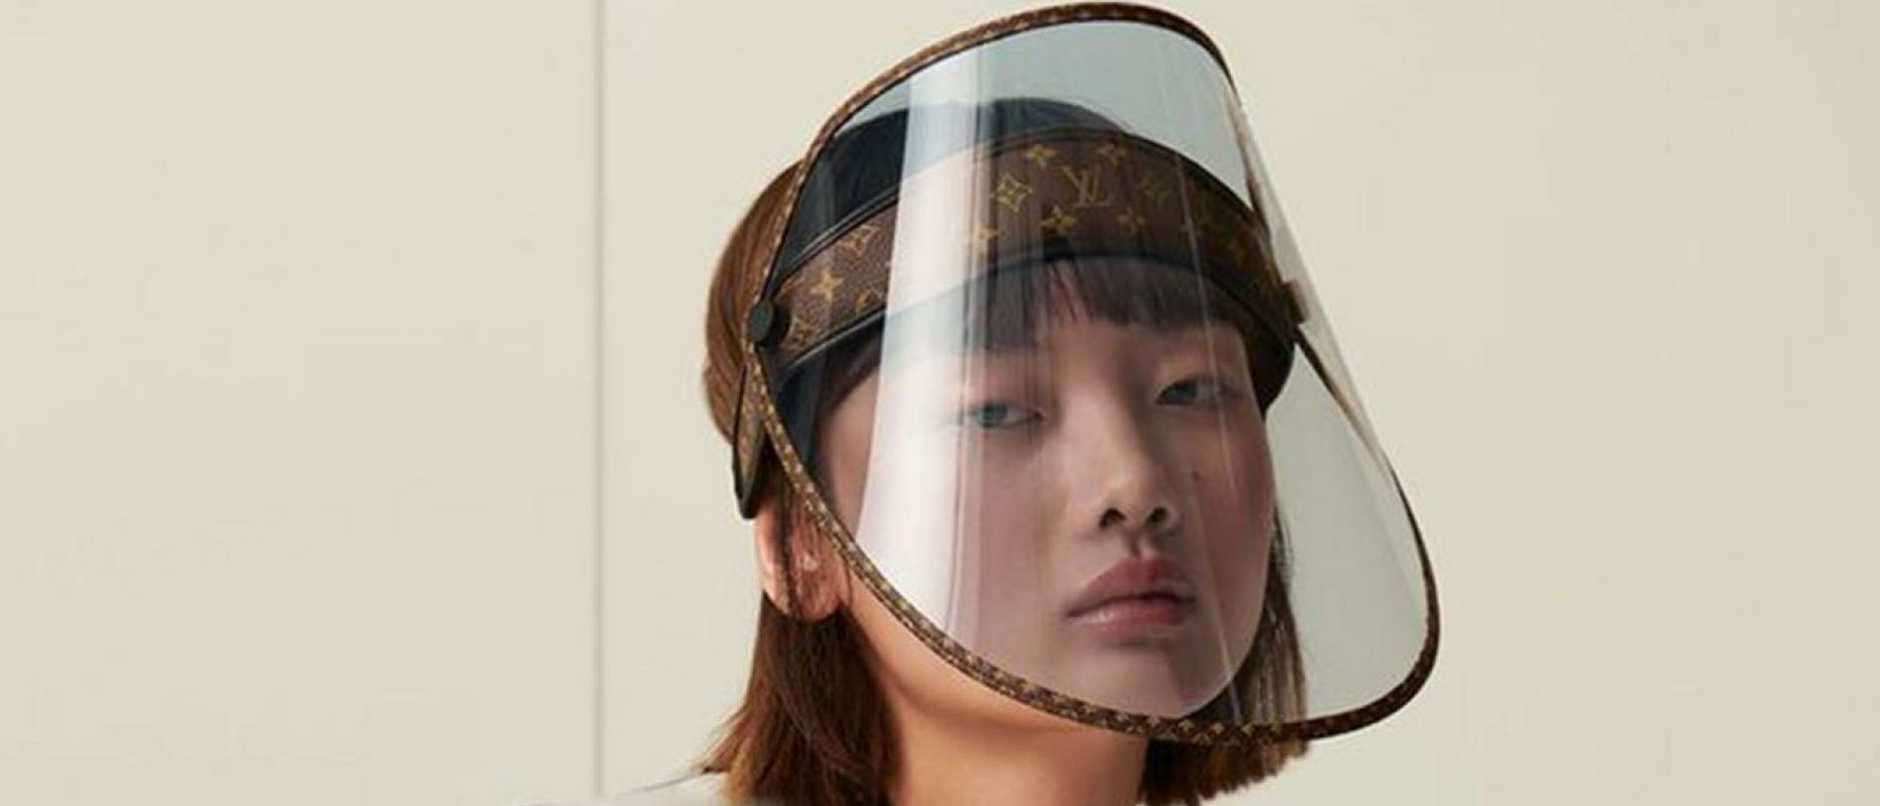 Louis Vuitton's virus-inspired face shield to sell for just under $1k